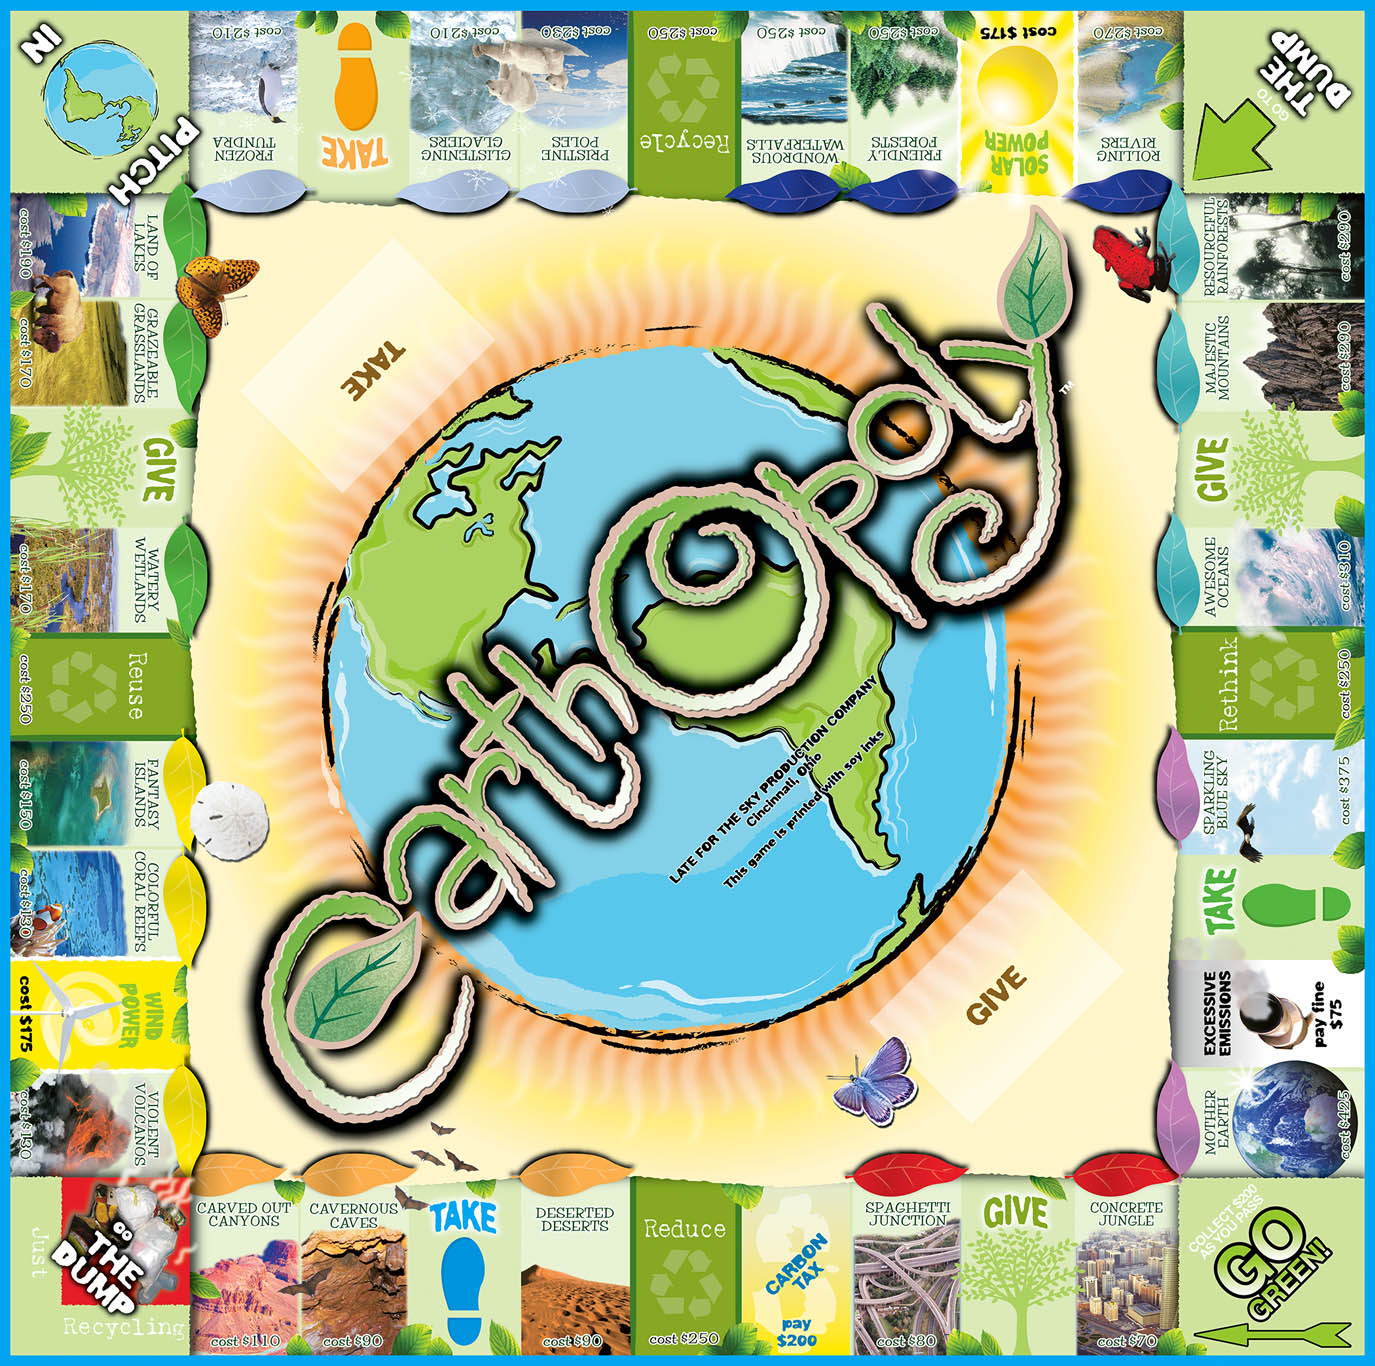 EARTH-OPOLY Board Game